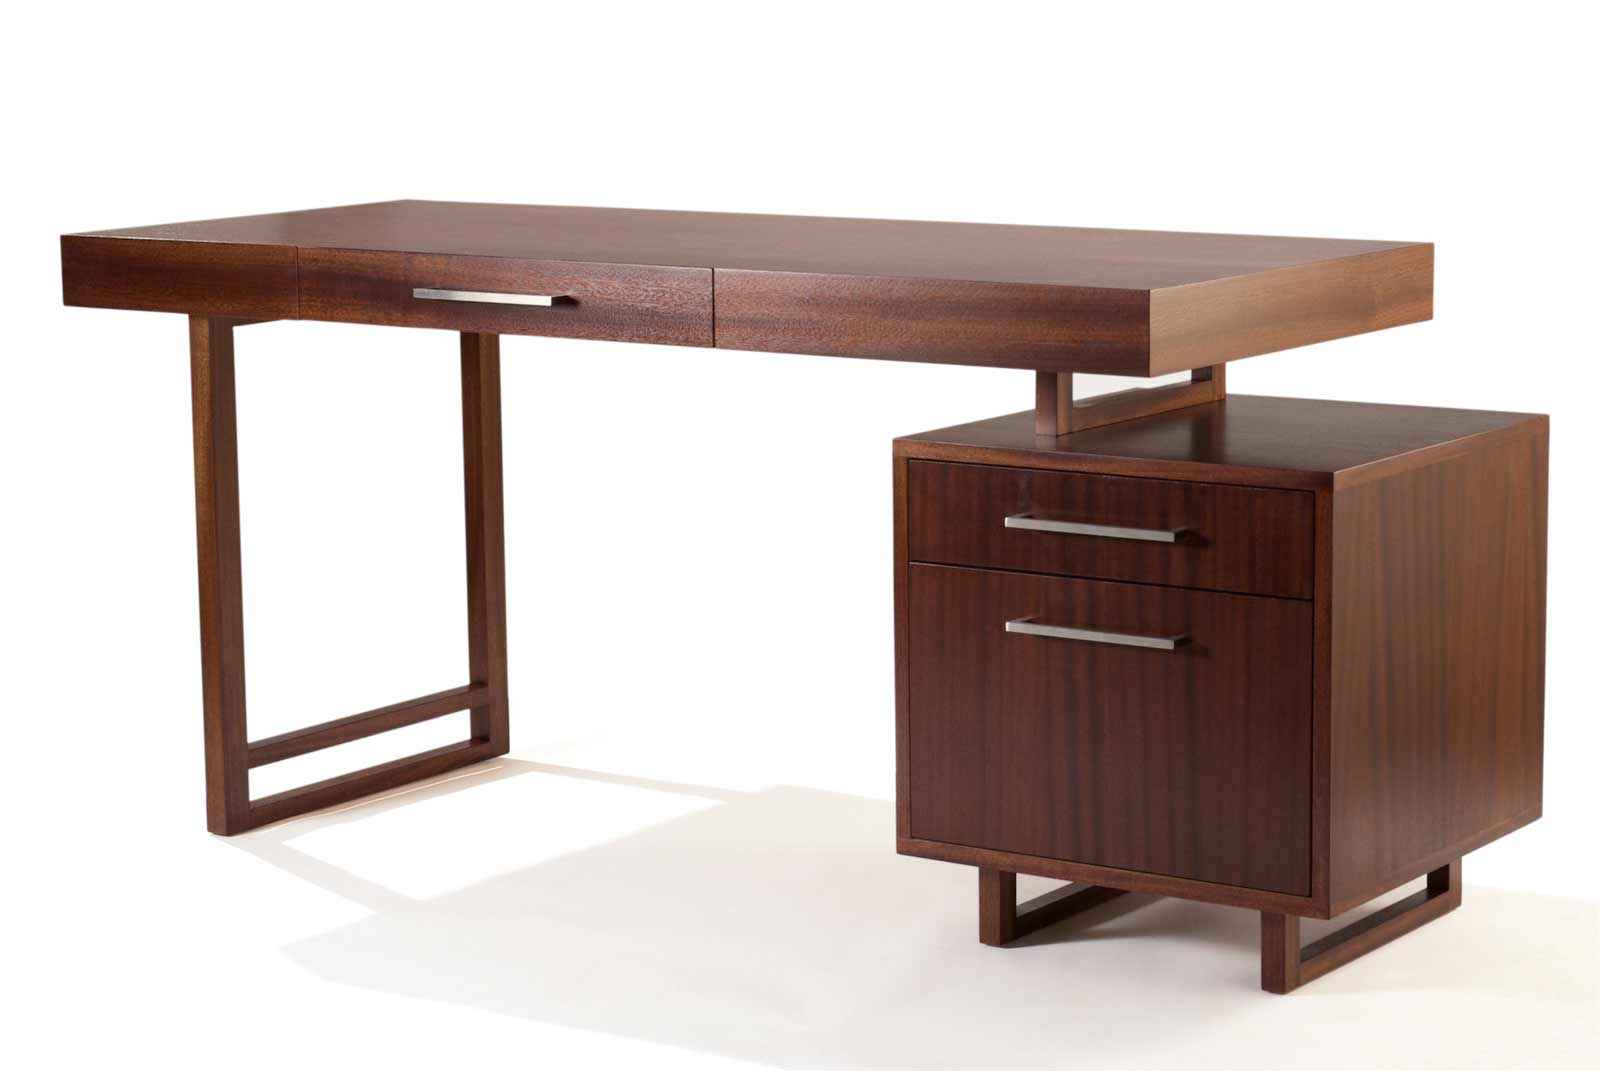 Work Tables For Home Office The Design For Cool Office Desks